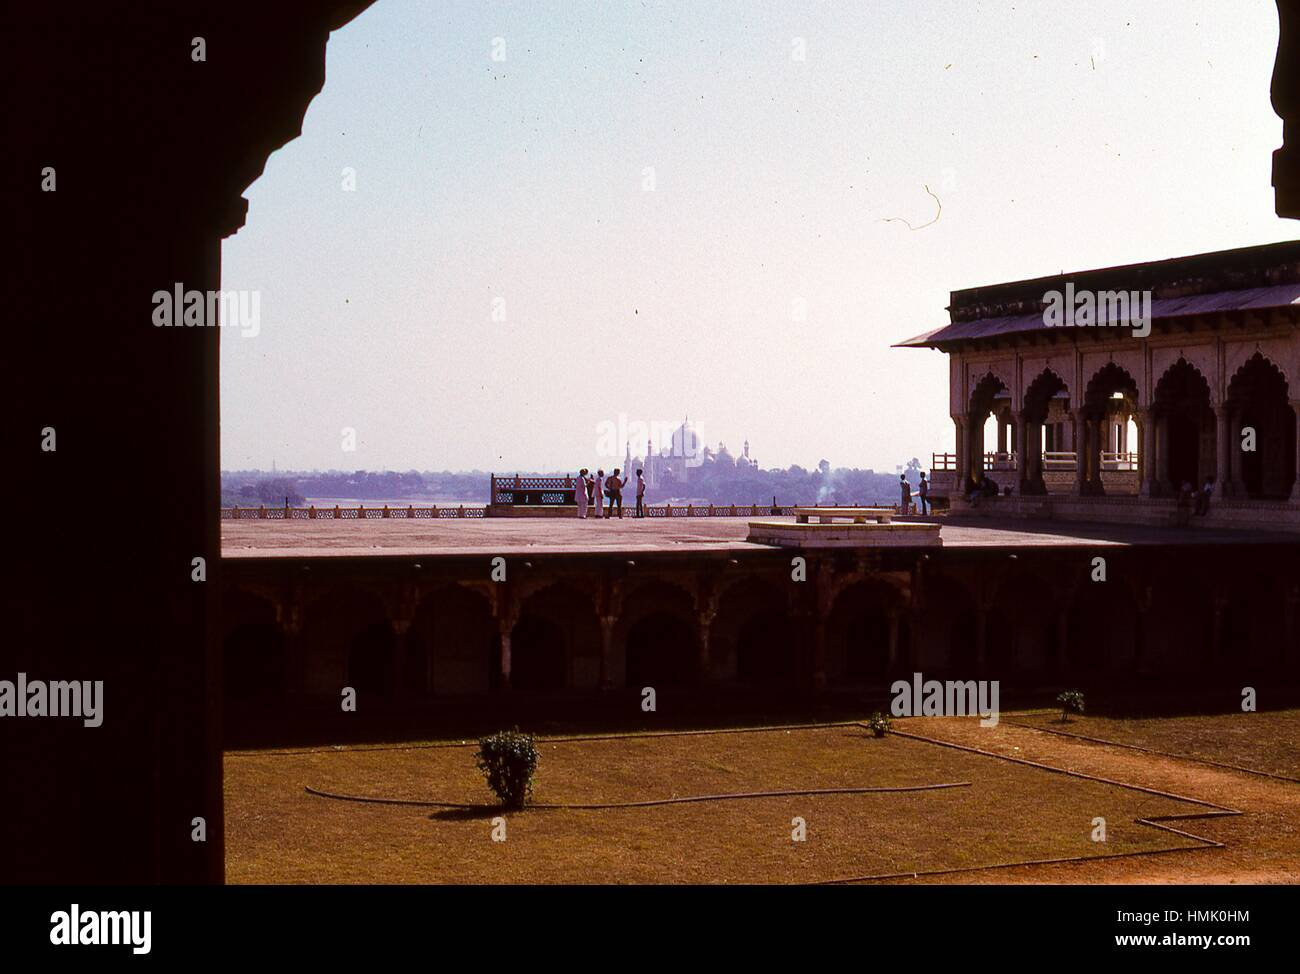 Panoramic view from the Agra Fort of the Taj Mahal at a great distance away in the background, November, 1973. Tourists - Stock Image